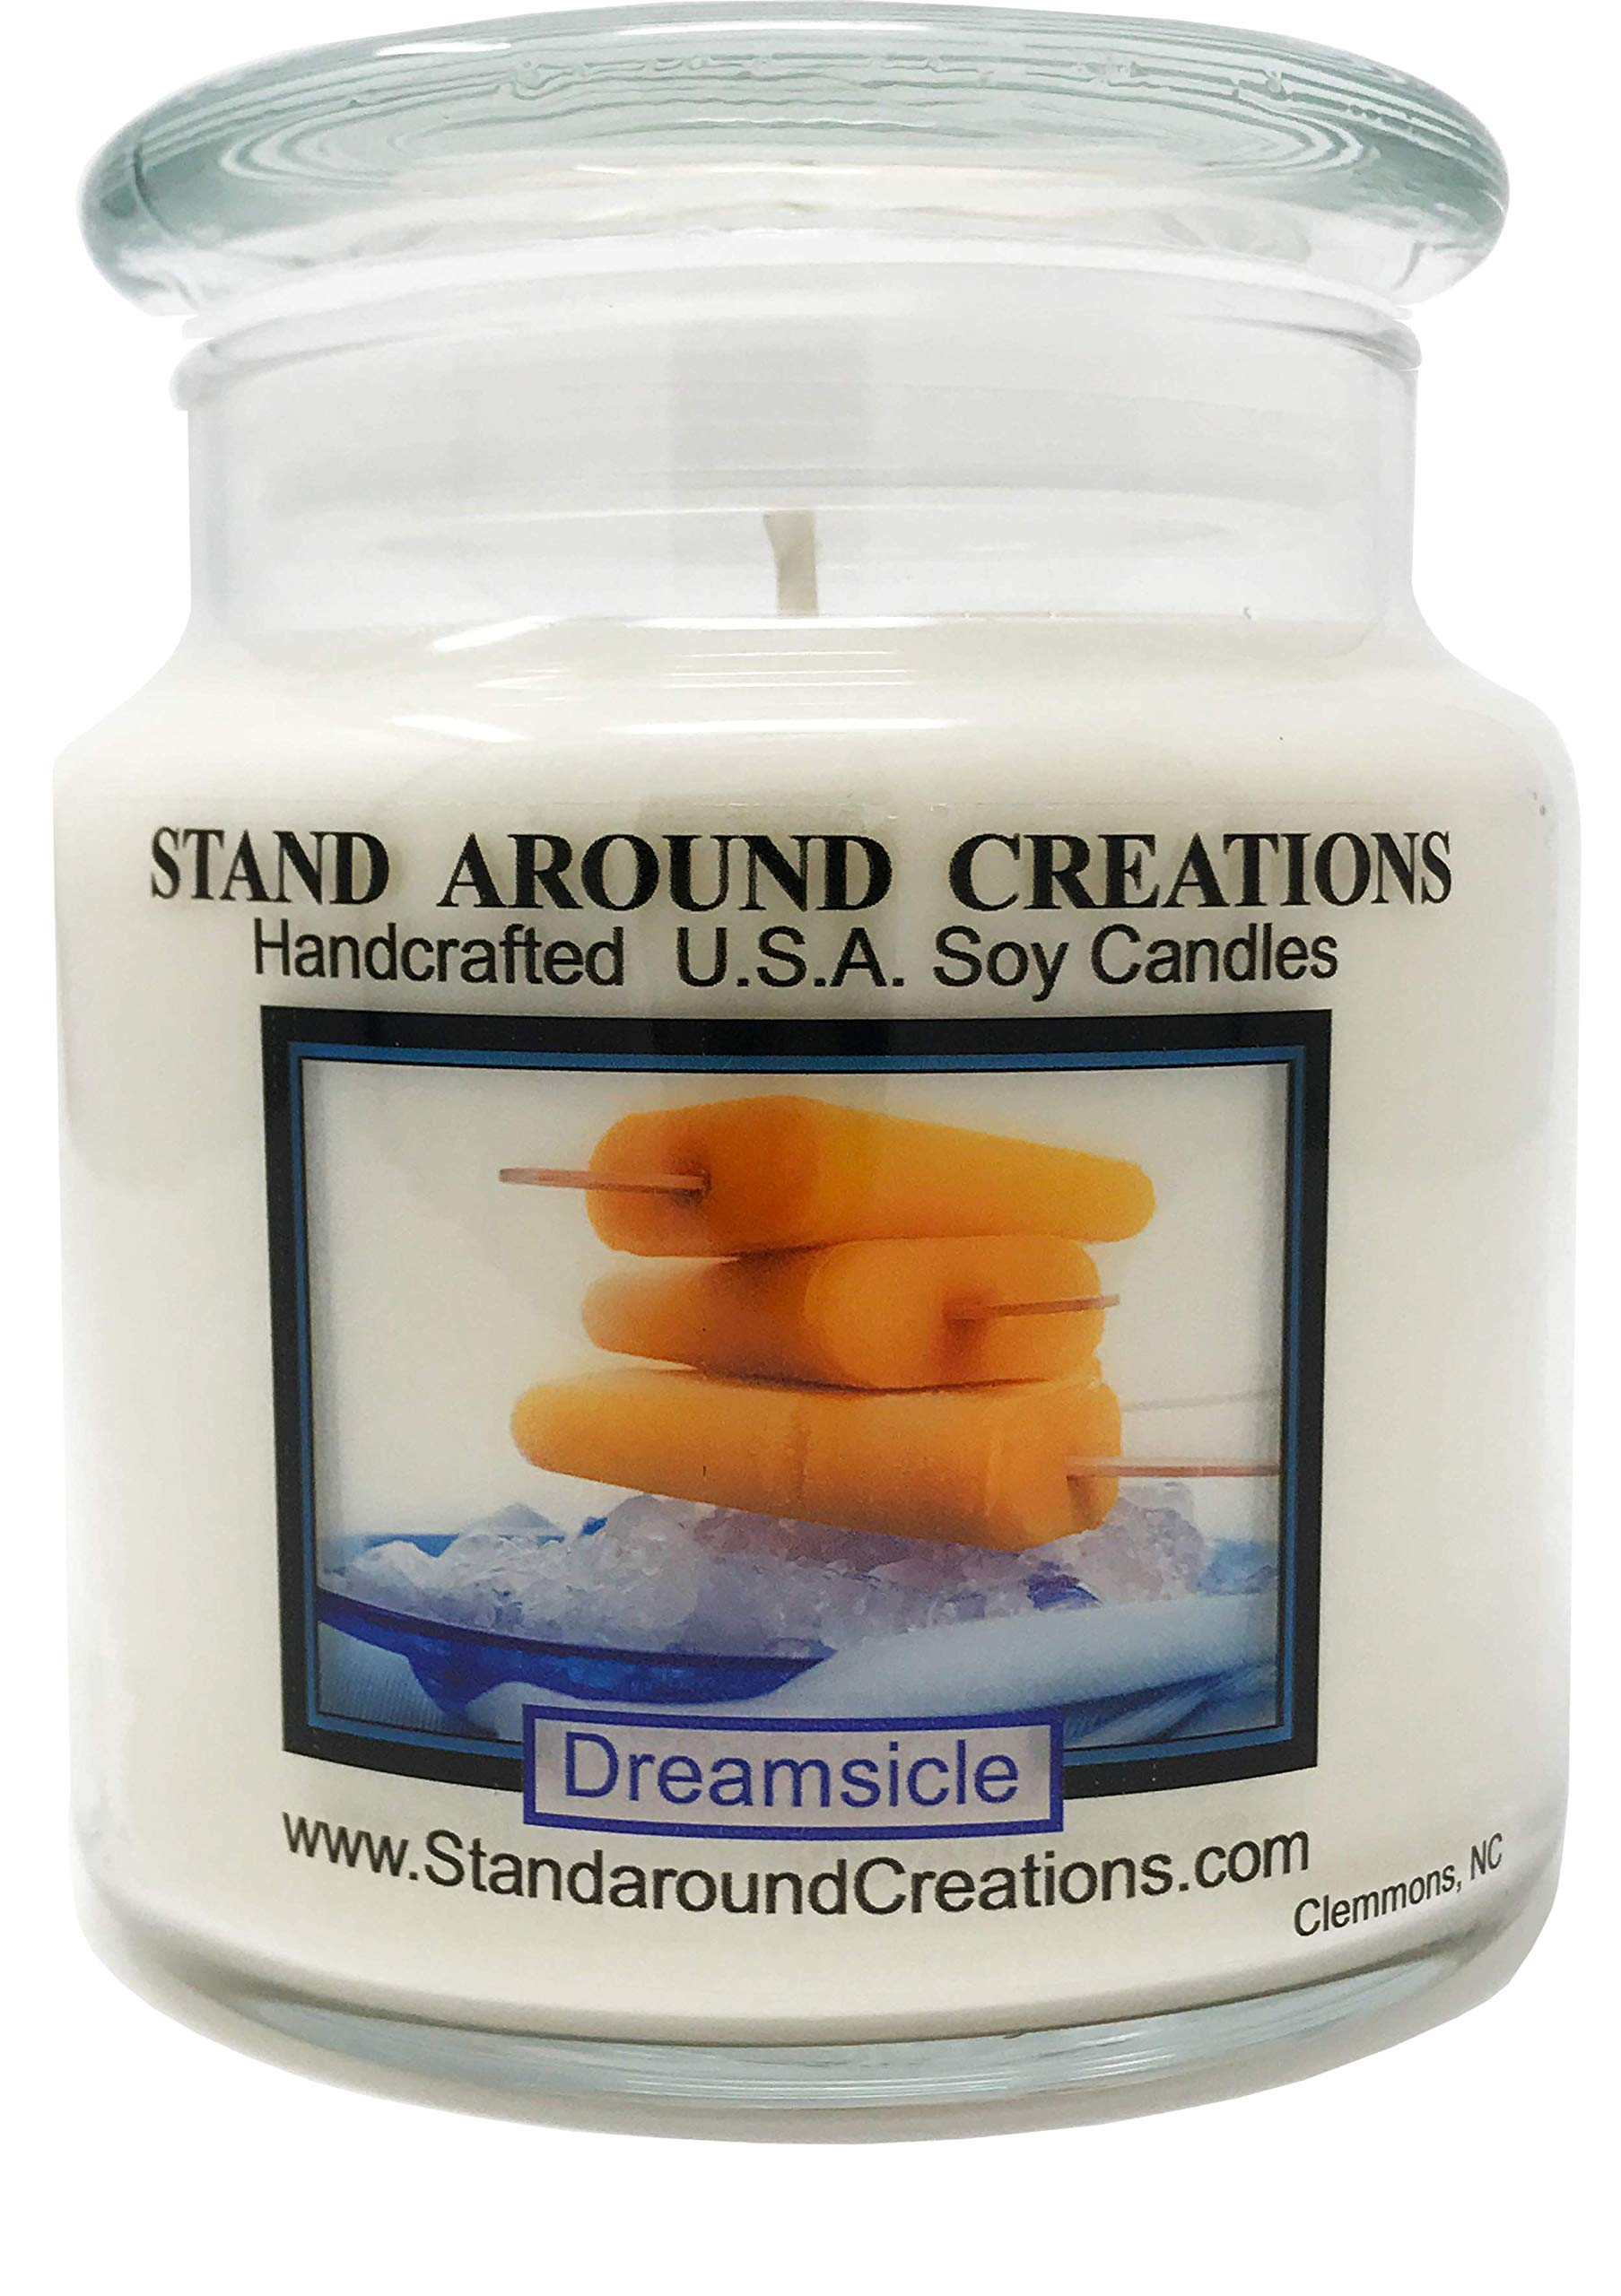 Premium 100% Soy Apothecary Candle - 16 oz. Dreamsicle: Vibrant orange citrus and heartwarming vanilla blended together.